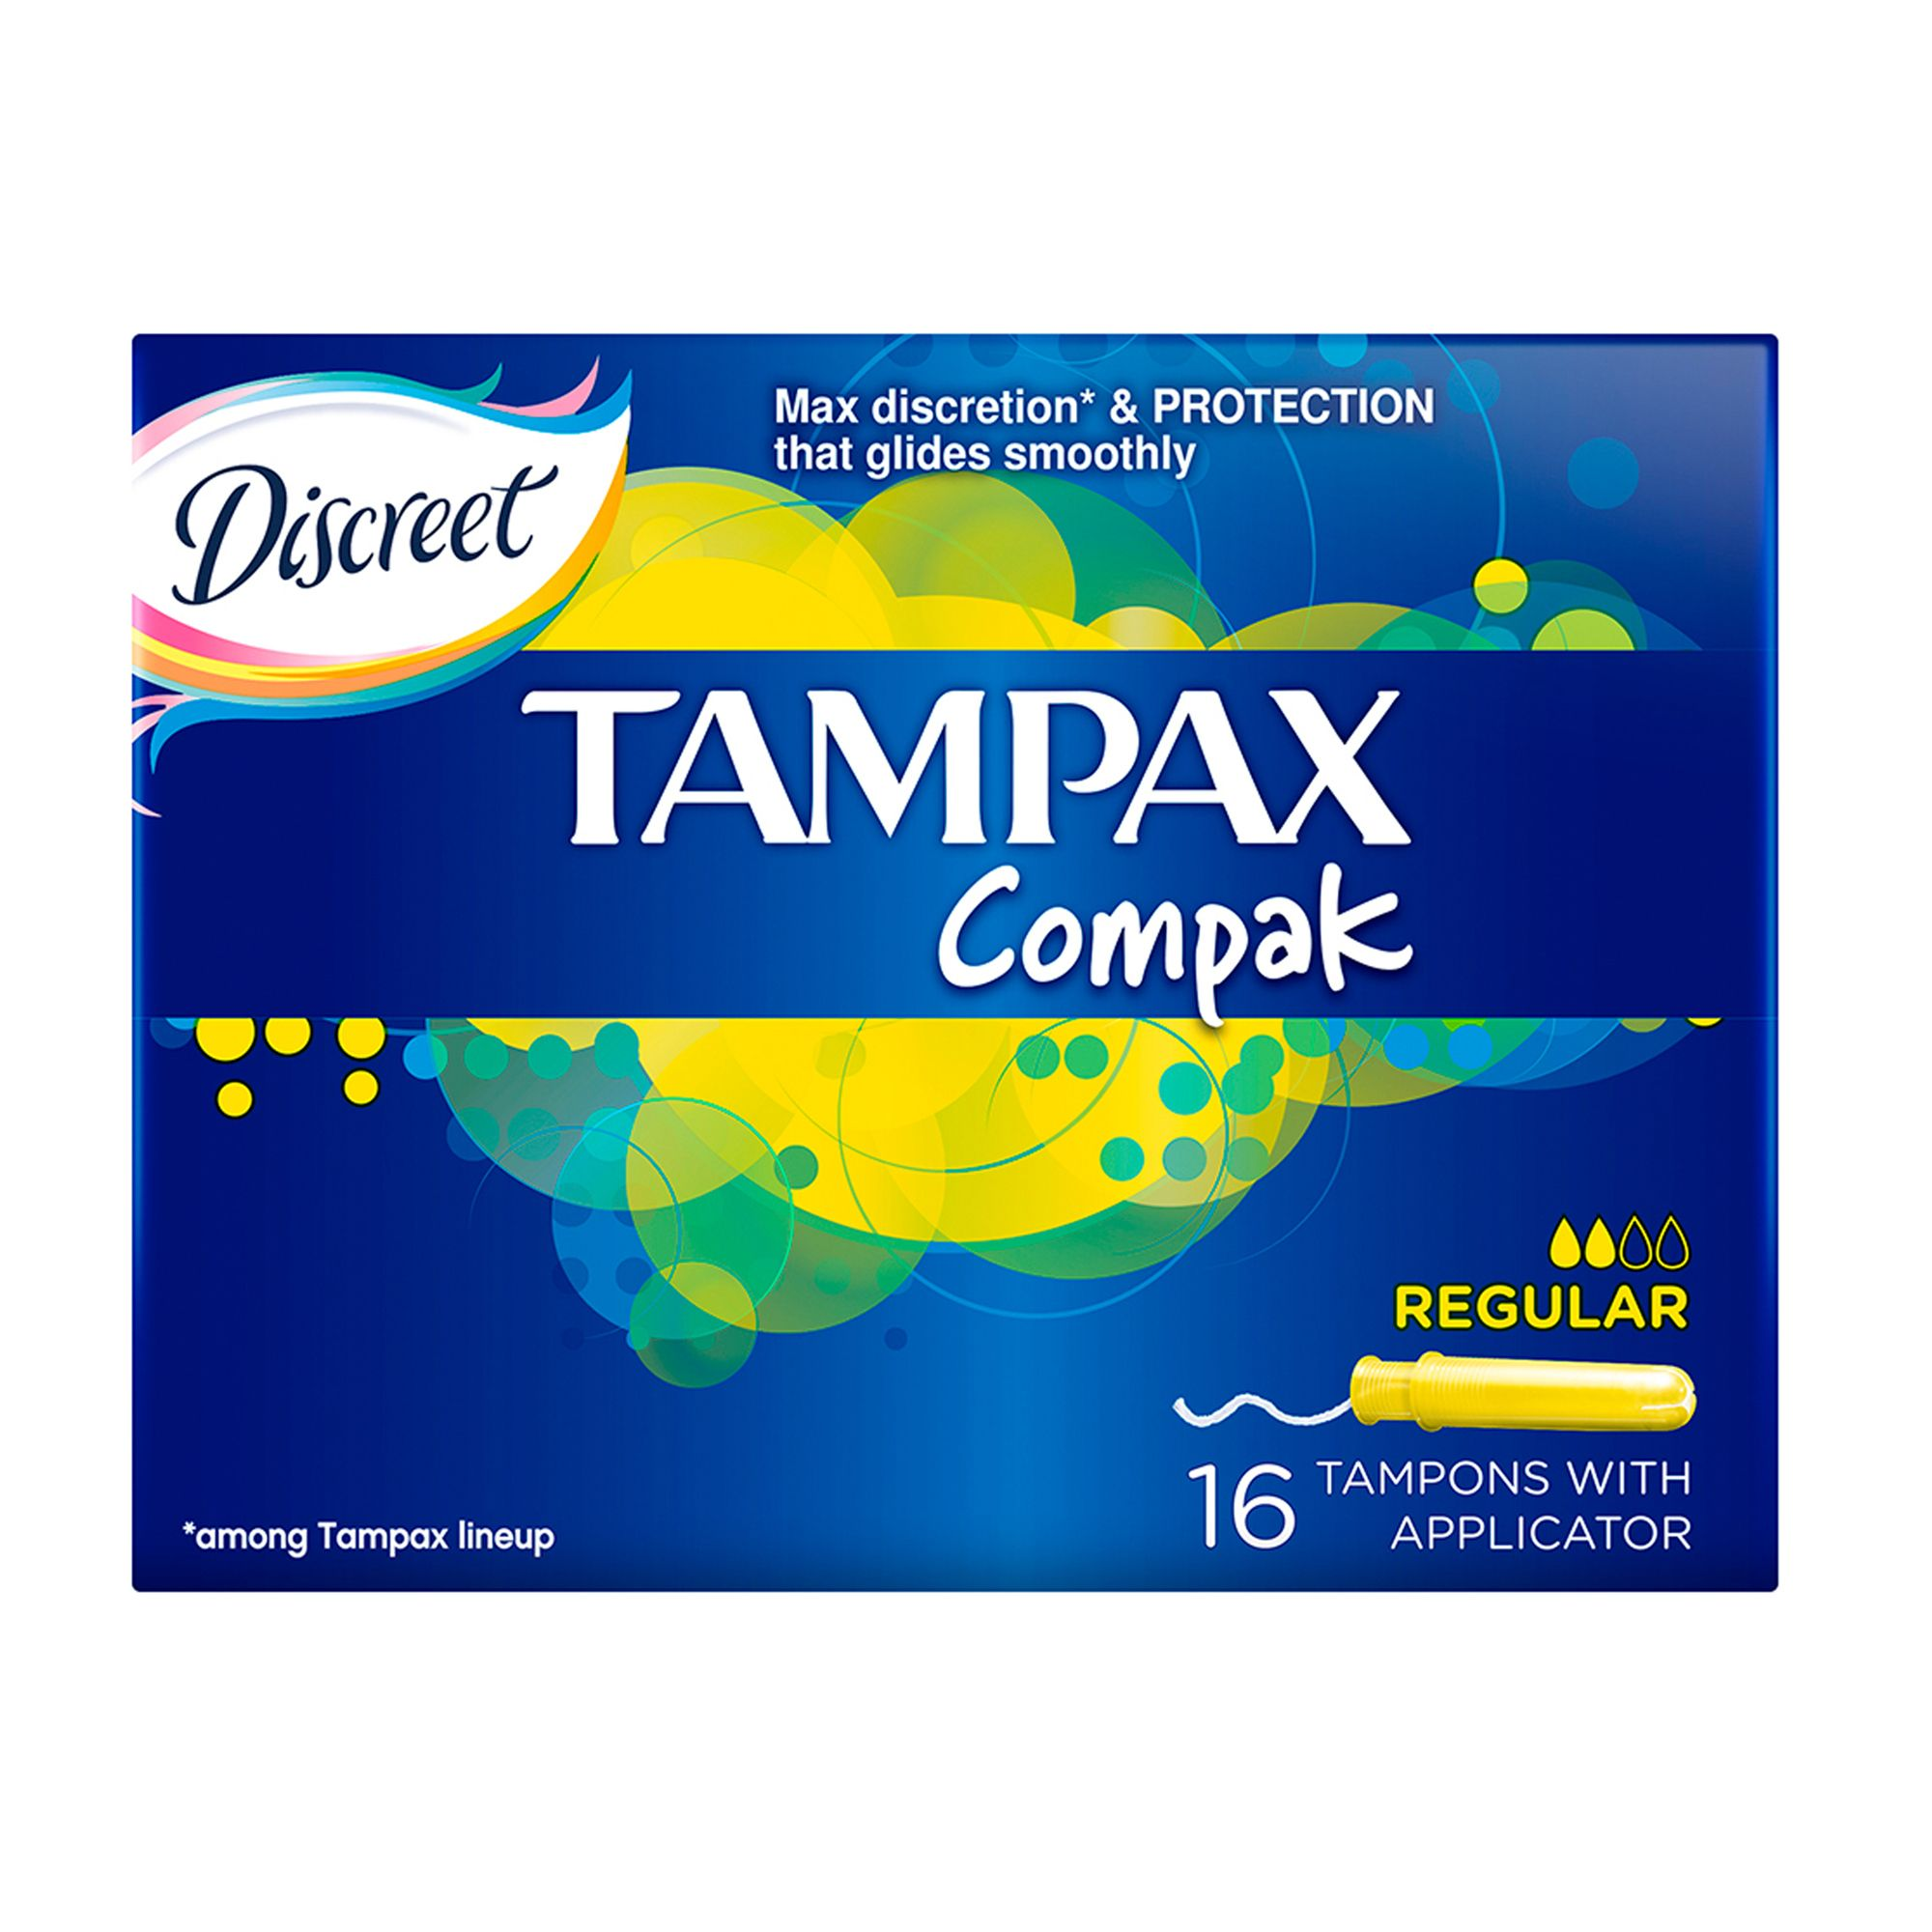 фото упаковки Tampax Compak regular тампоны женские гигиенические с аппликатором